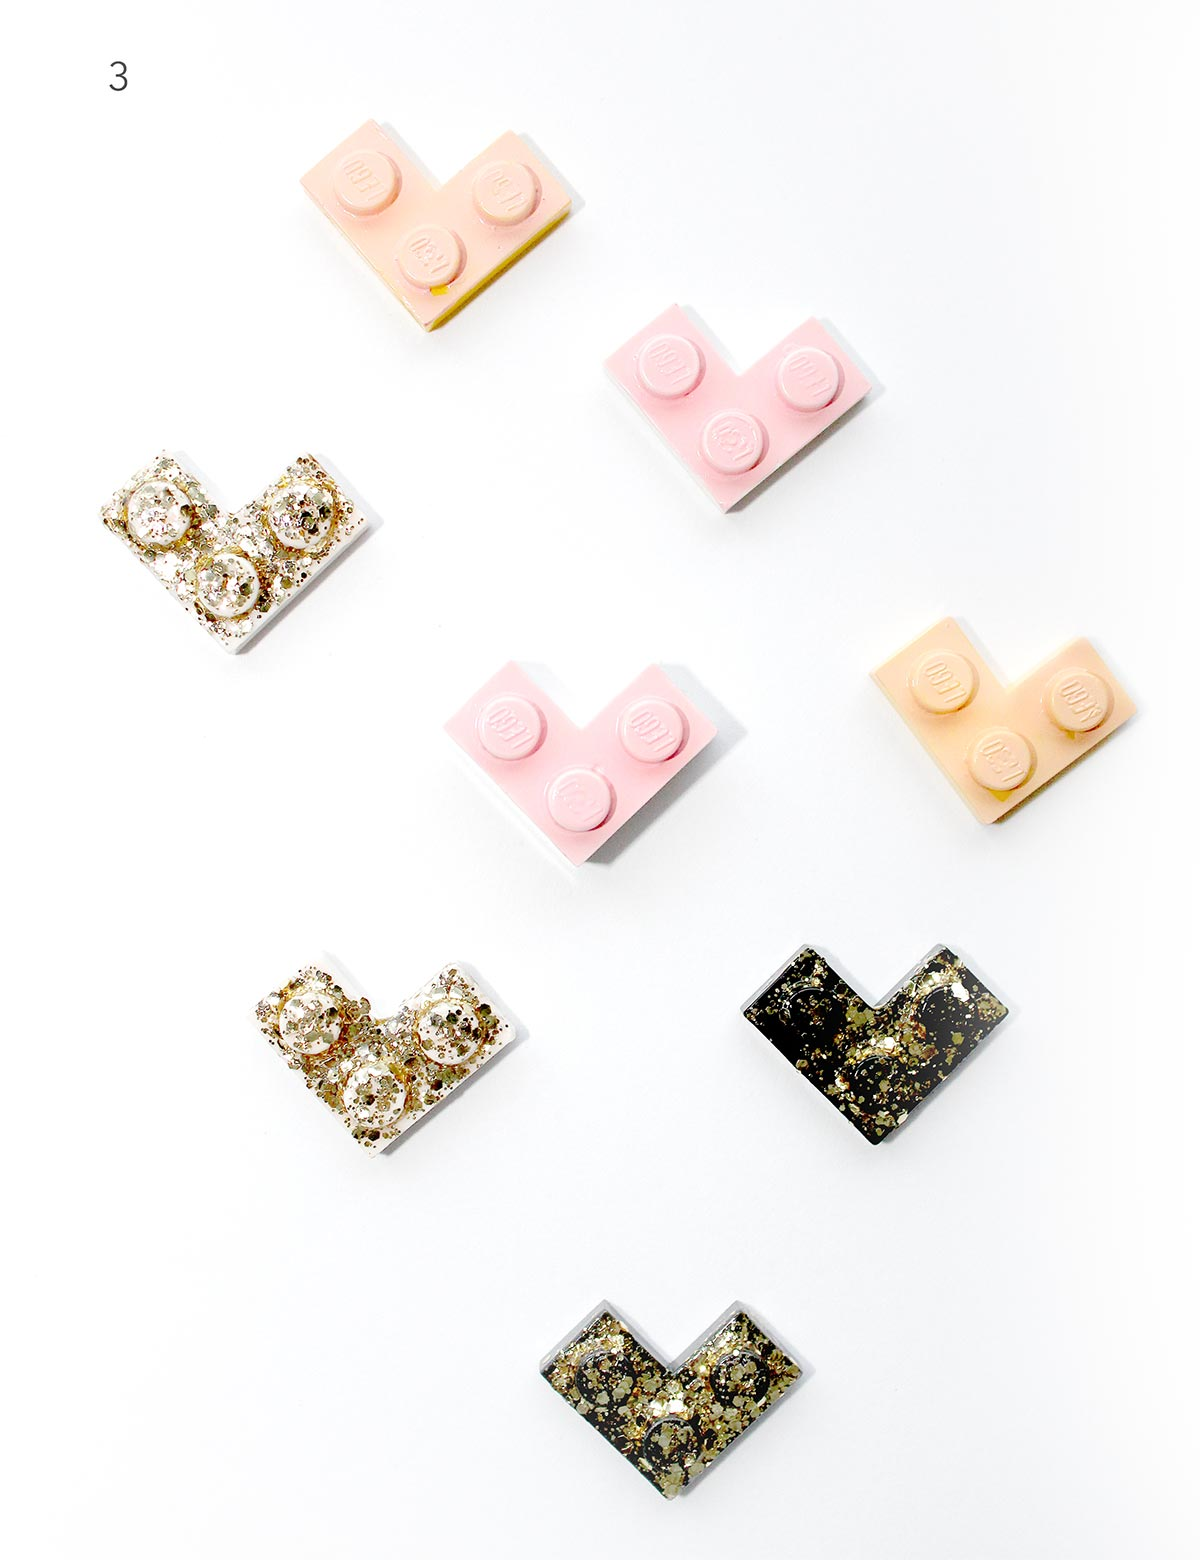 DIY Lego Valentine's Day Bling Hearts and Printables Labels